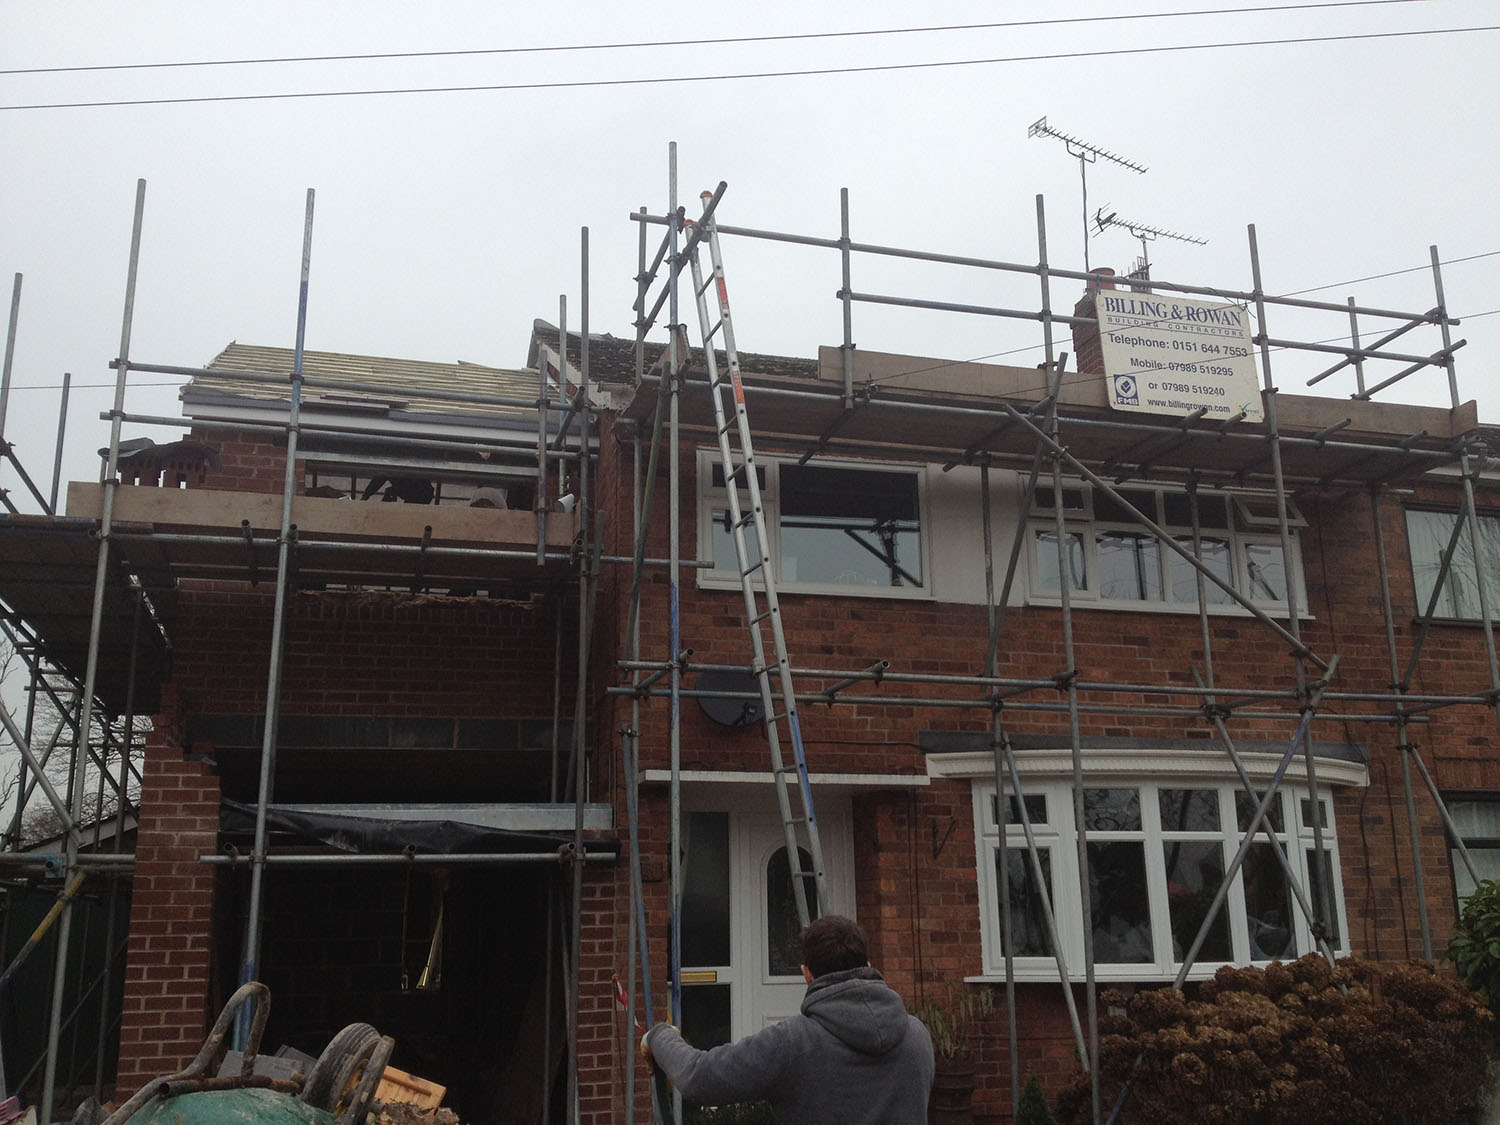 Garage Home Extension Billing Rowan Builders Wirral Home Extensions Wirral Merseyside